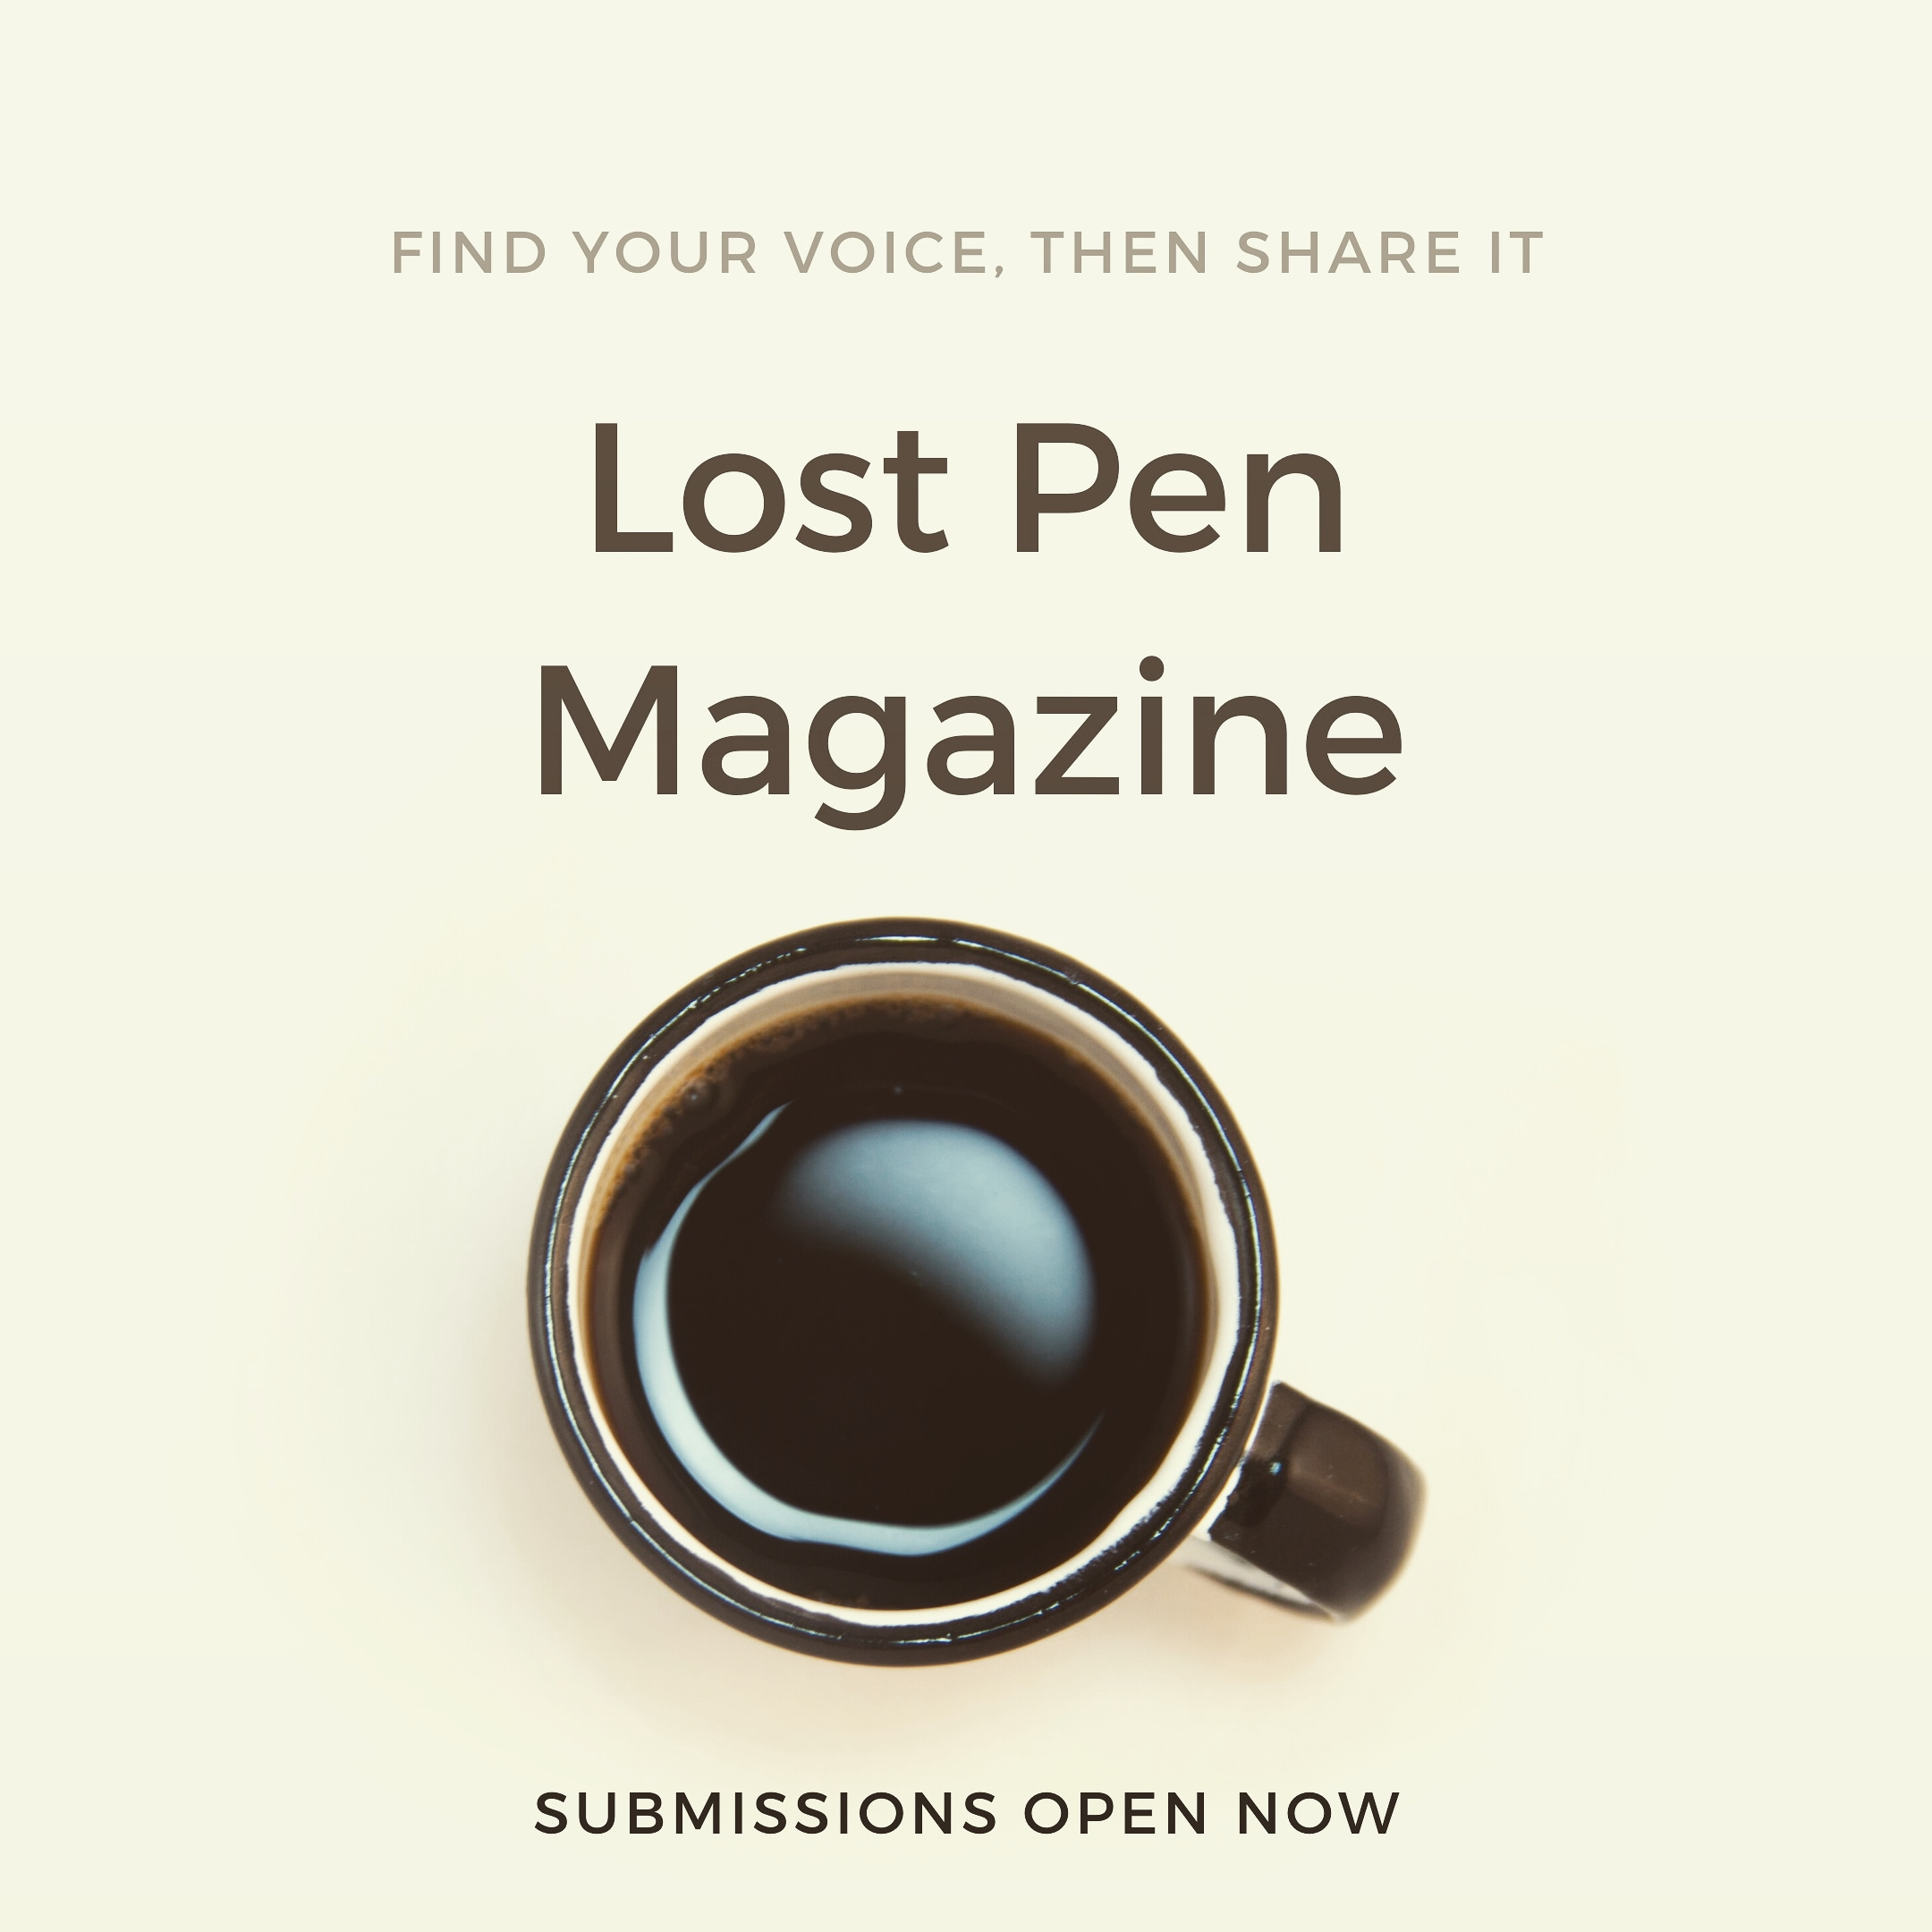 Getting Candid About the Lost Pen Magazine: Interview